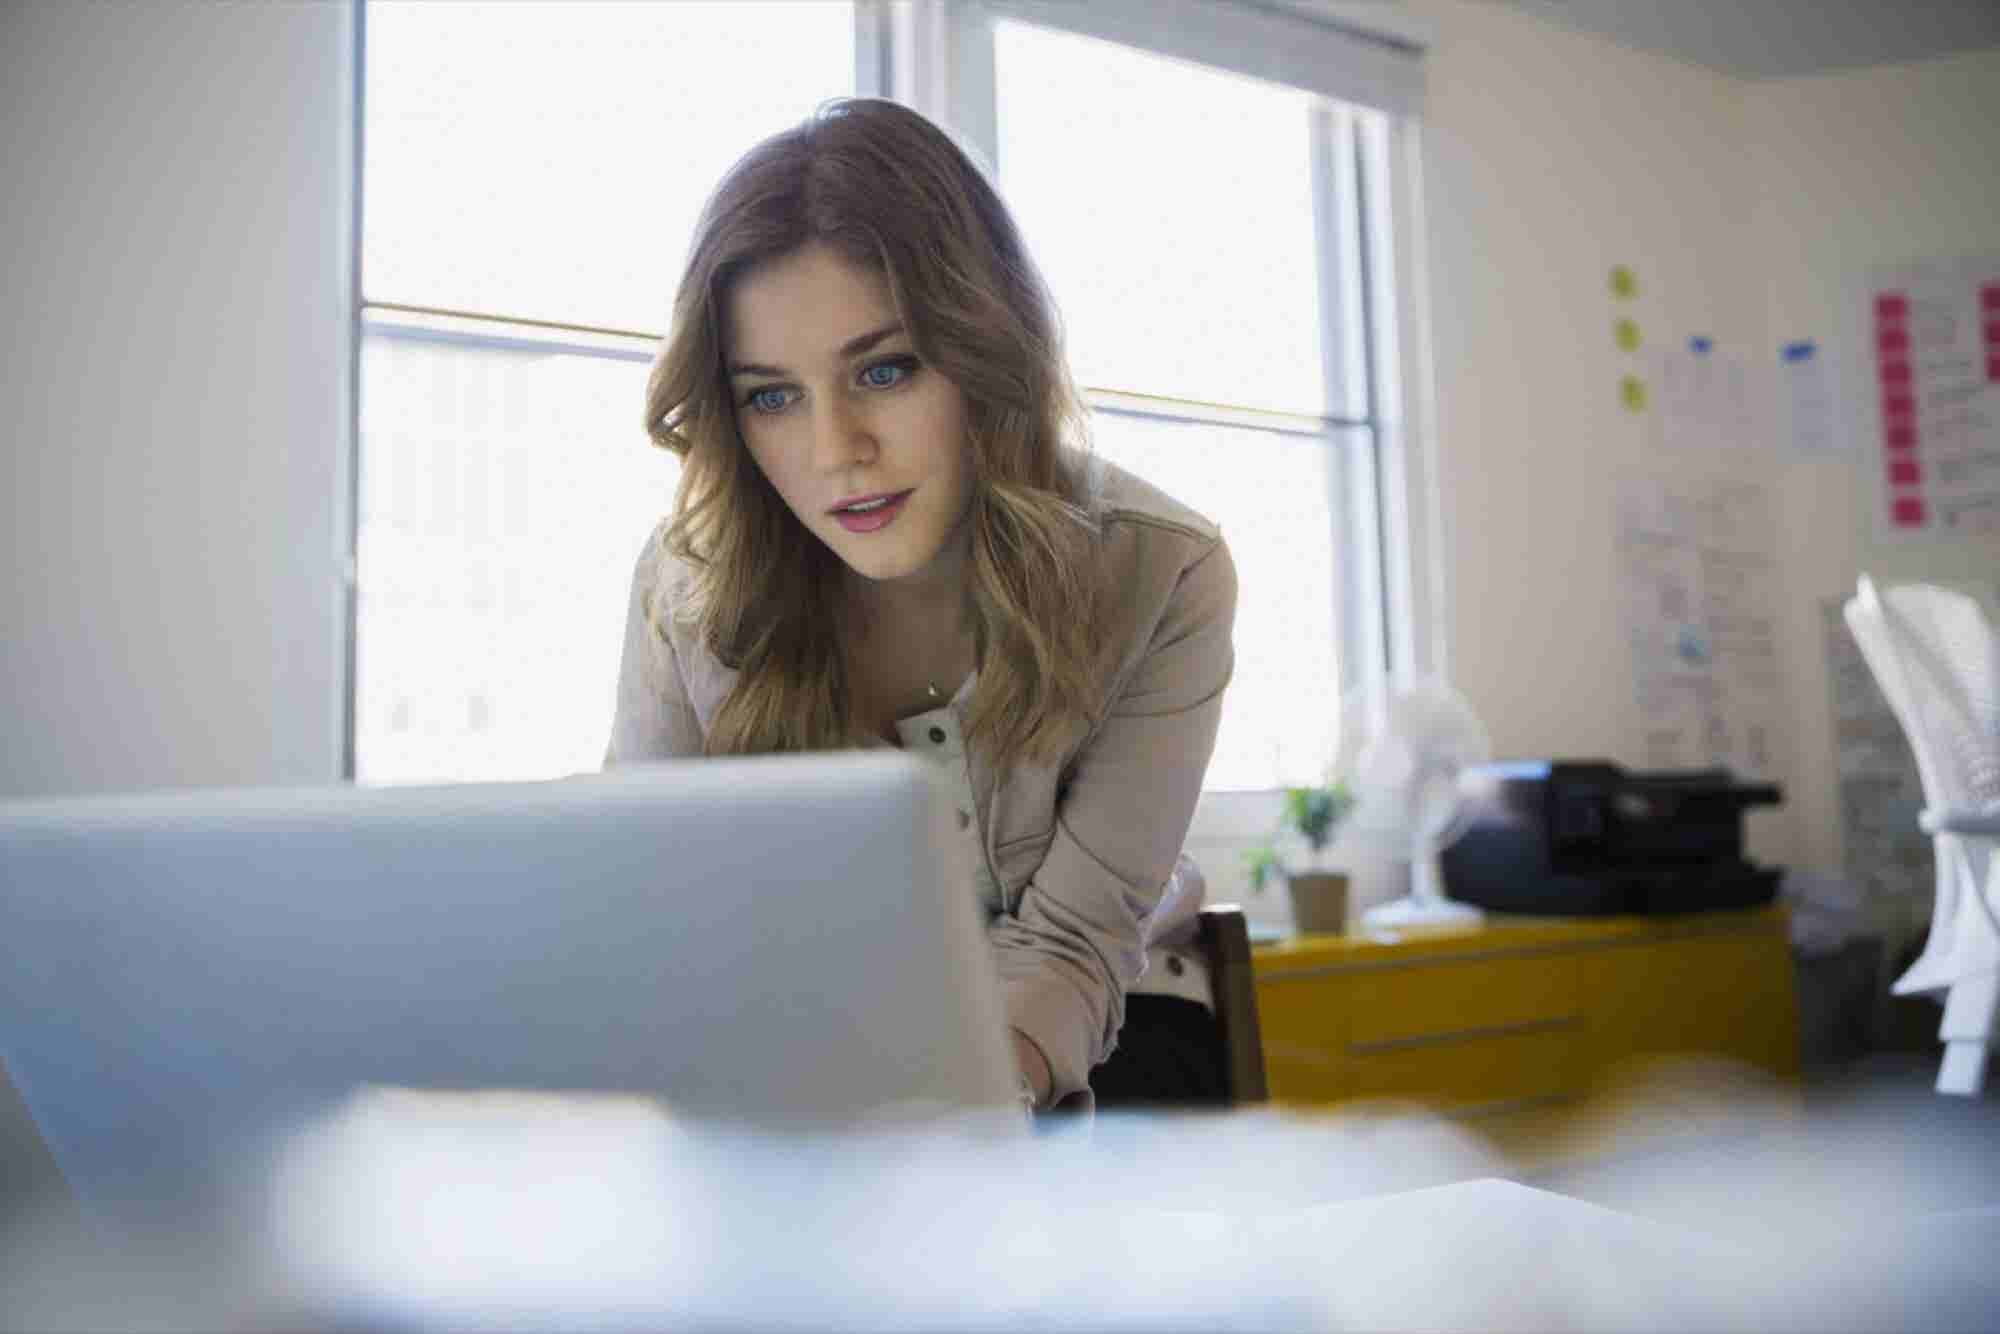 How to Make 'Boring' Industries Exciting Online